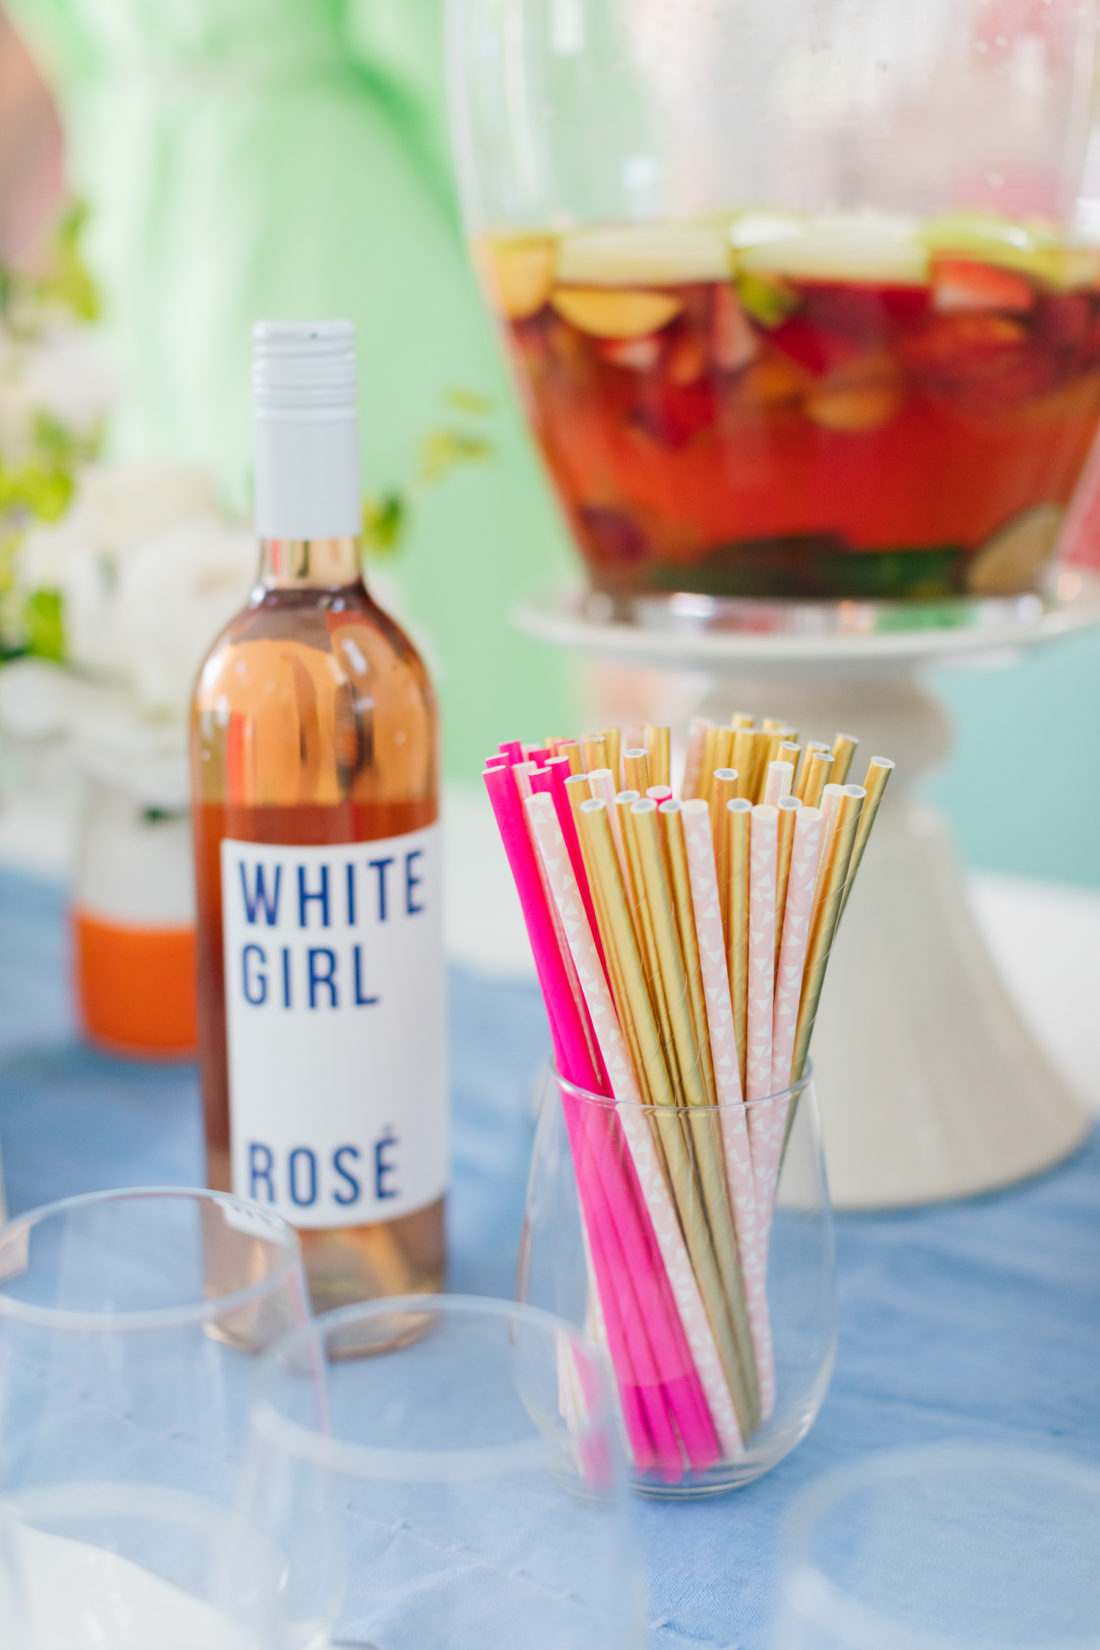 Eva Amurri Martino serving White Girl Rose at the Happily Eva After Kickoff party